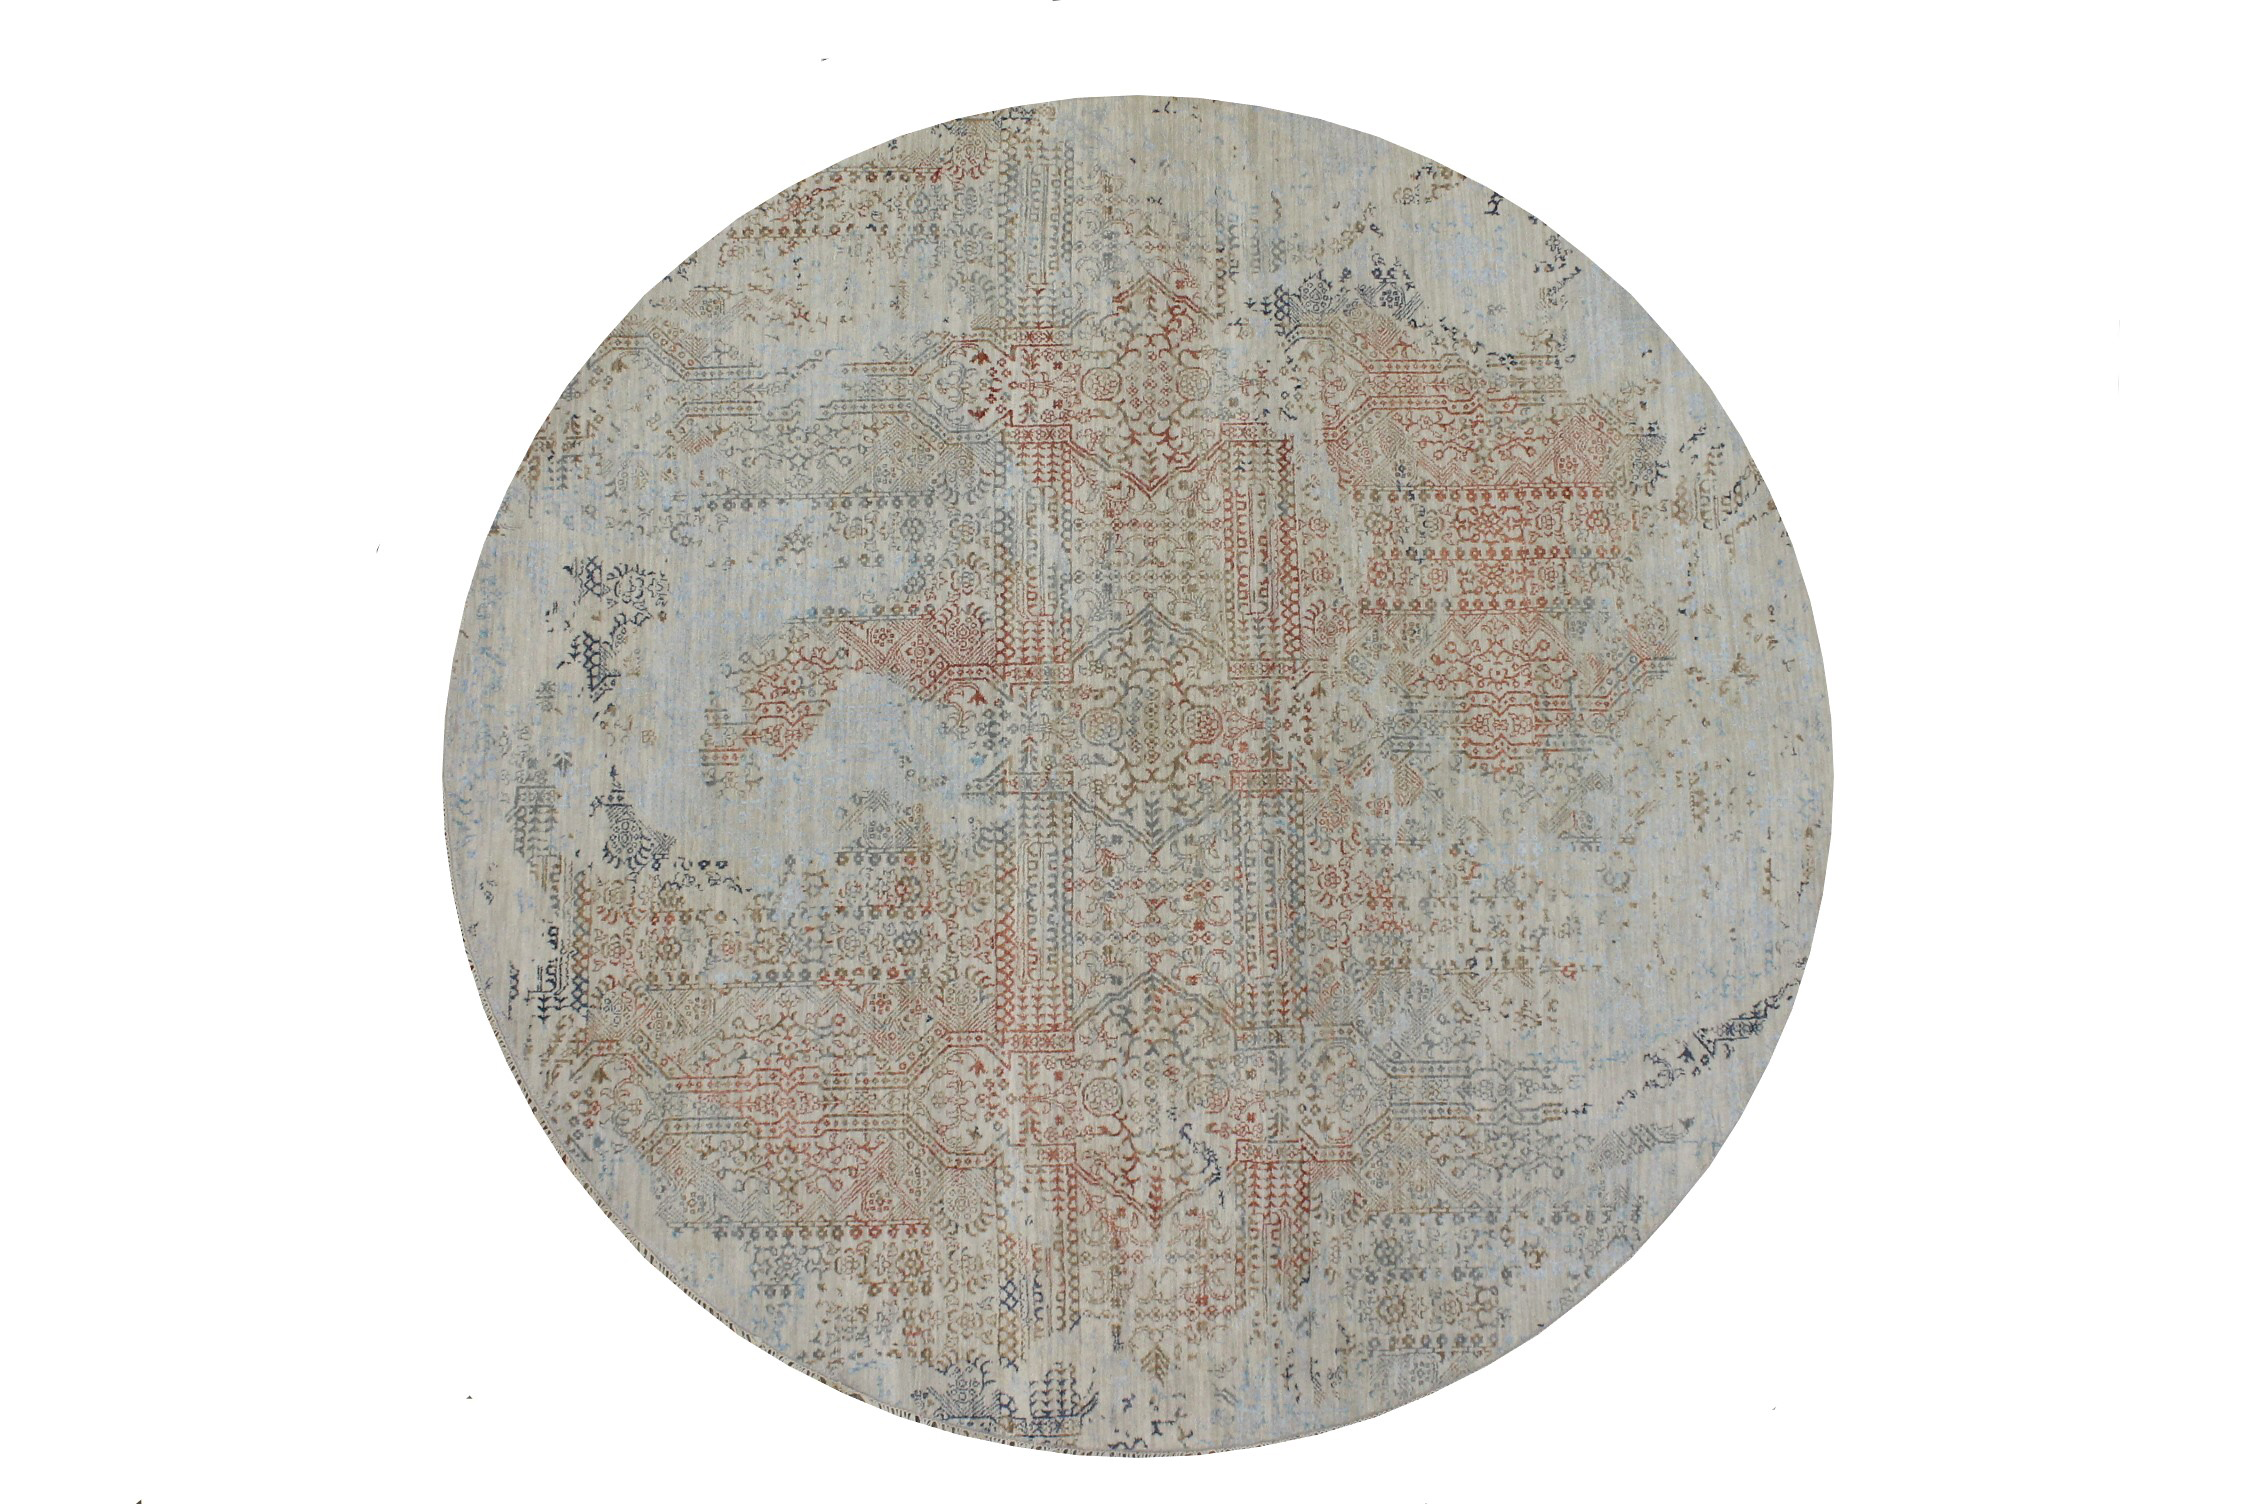 8 ft. Round & Square  Hand Knotted Wool Area Rug - MR022936